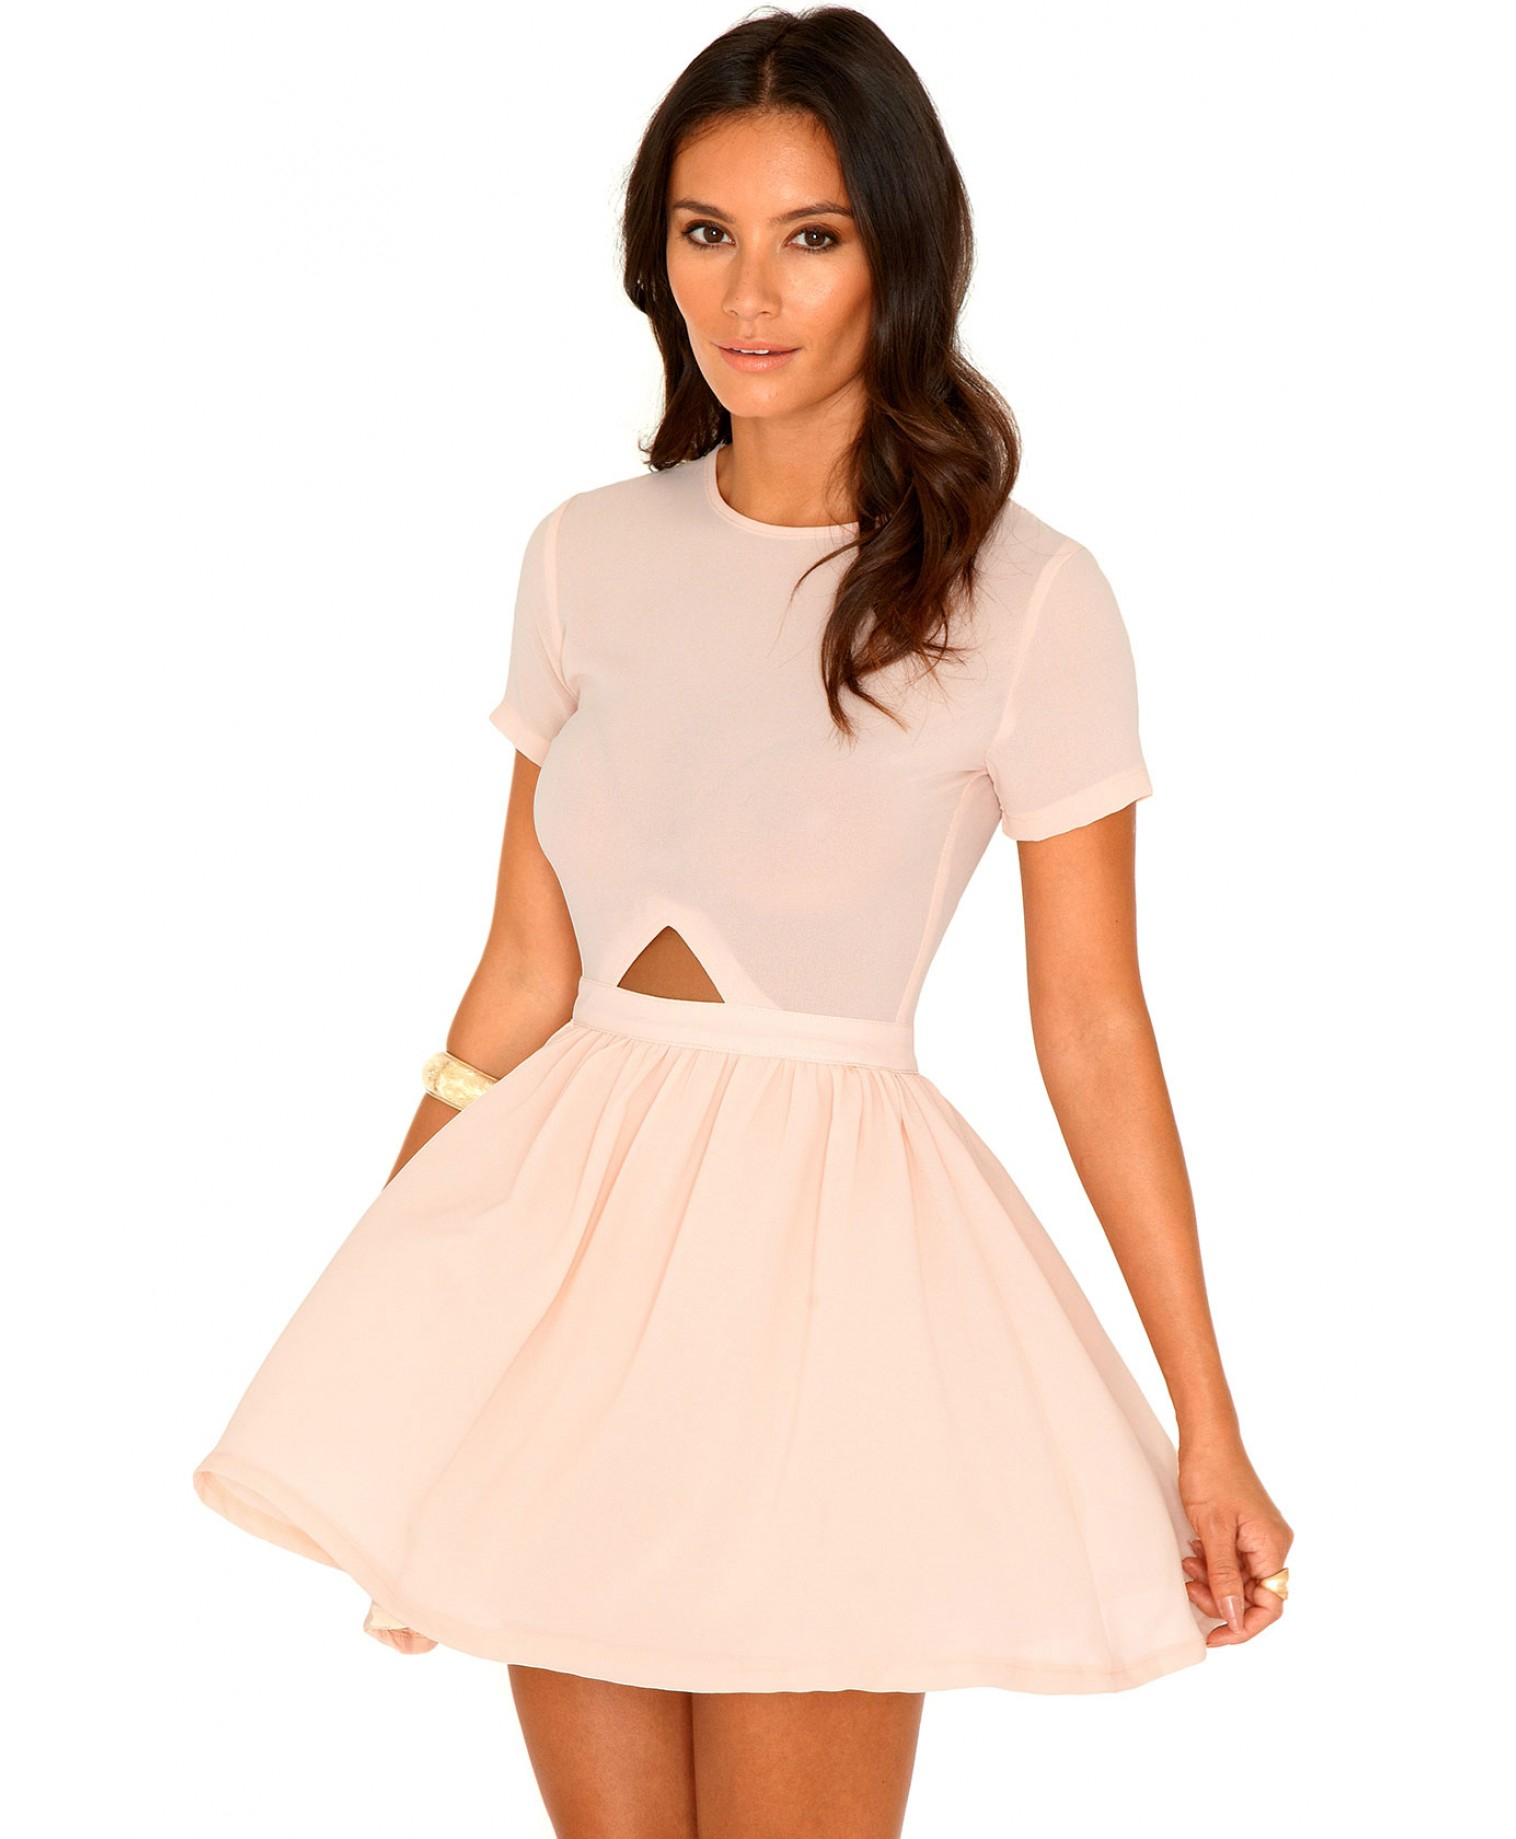 fd1c38f4111b Backless Dress Price $44.00 · Blush Pink Skater Dress: Missguided Nuria  Chiffon Cut Out Skater Dress In Blush In